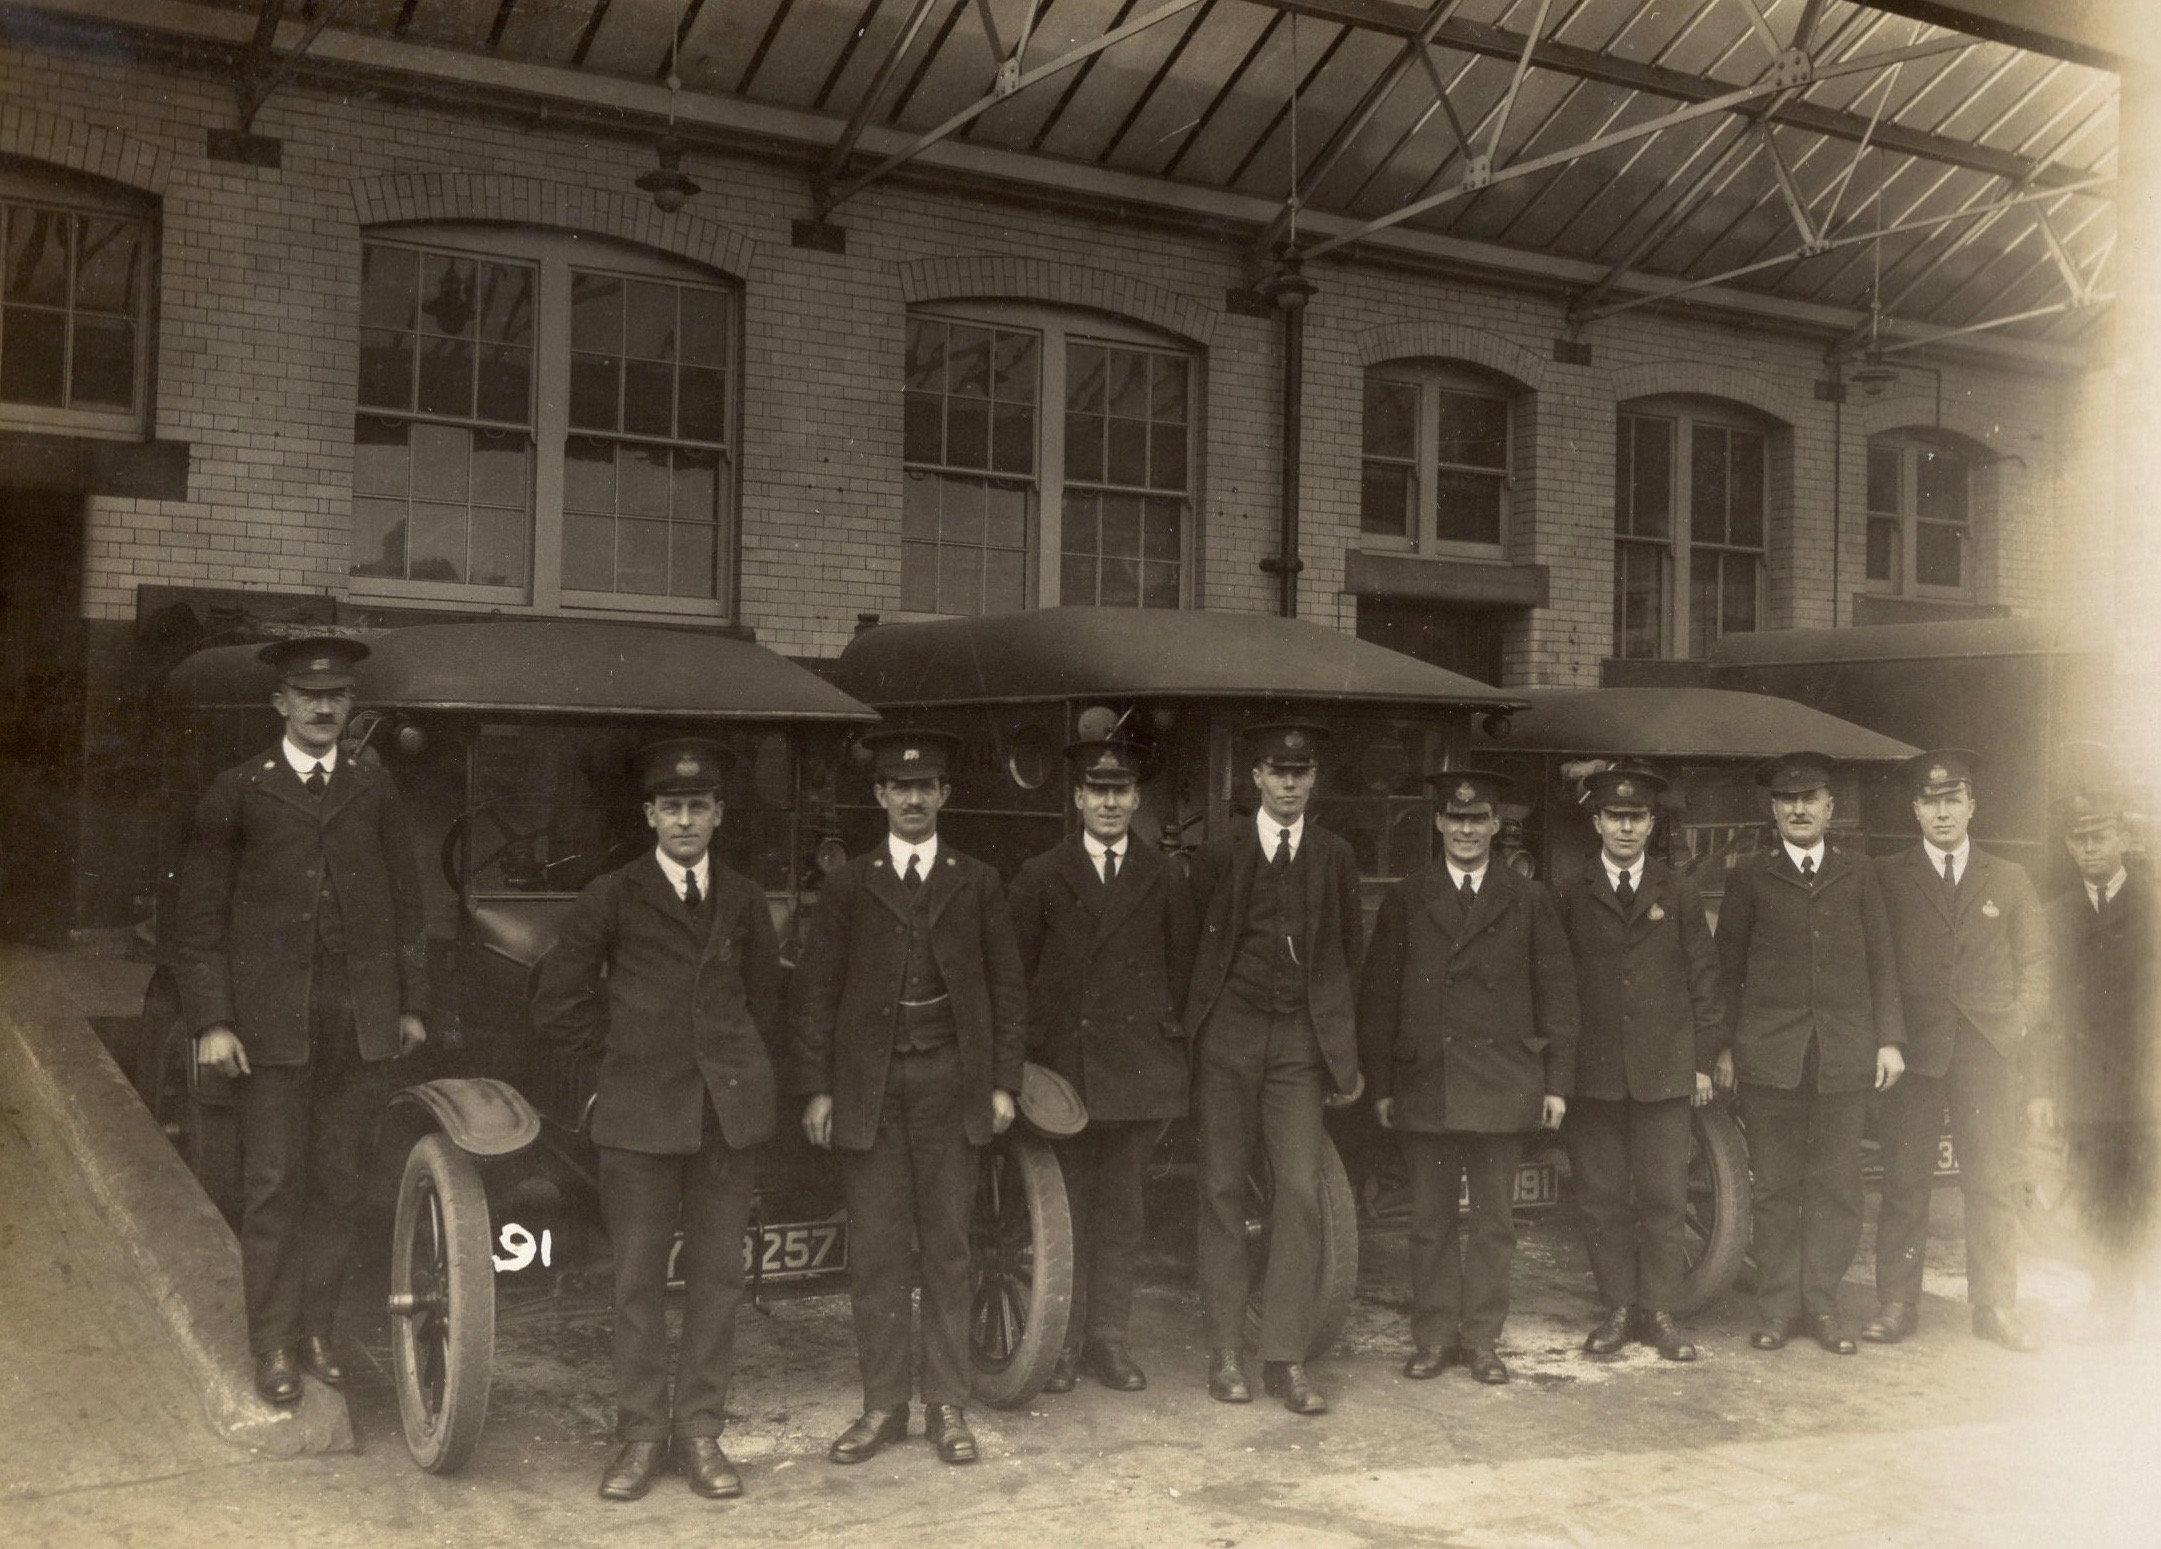 Sepia tone photograpgh showing Harry Poynter stood alongside a line of vintage post office vans and their drivers